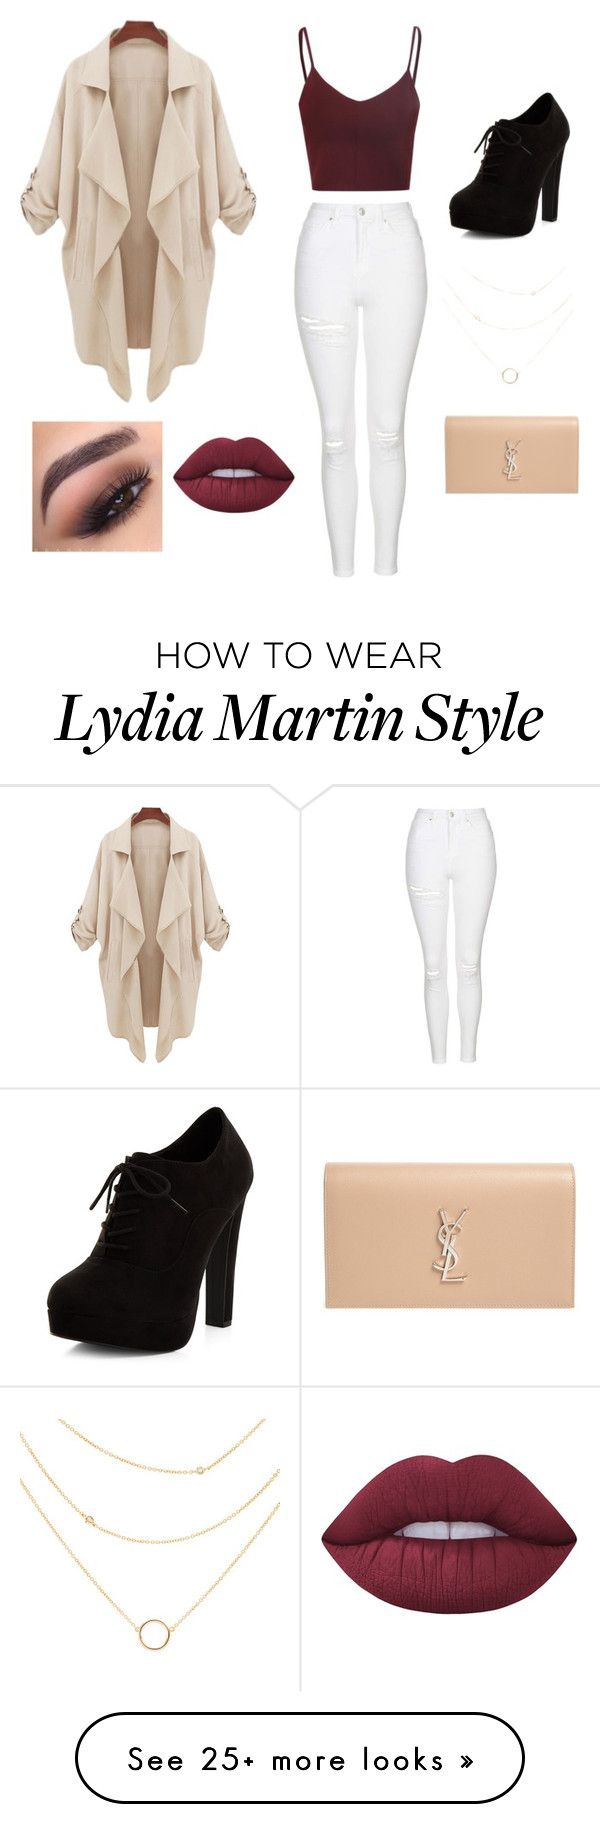 """Lydia Martin Inspired"" by esravalerio on Polyvore featuring Topshop, New Look, Yves Saint Laurent, Lime Crime and tarte"